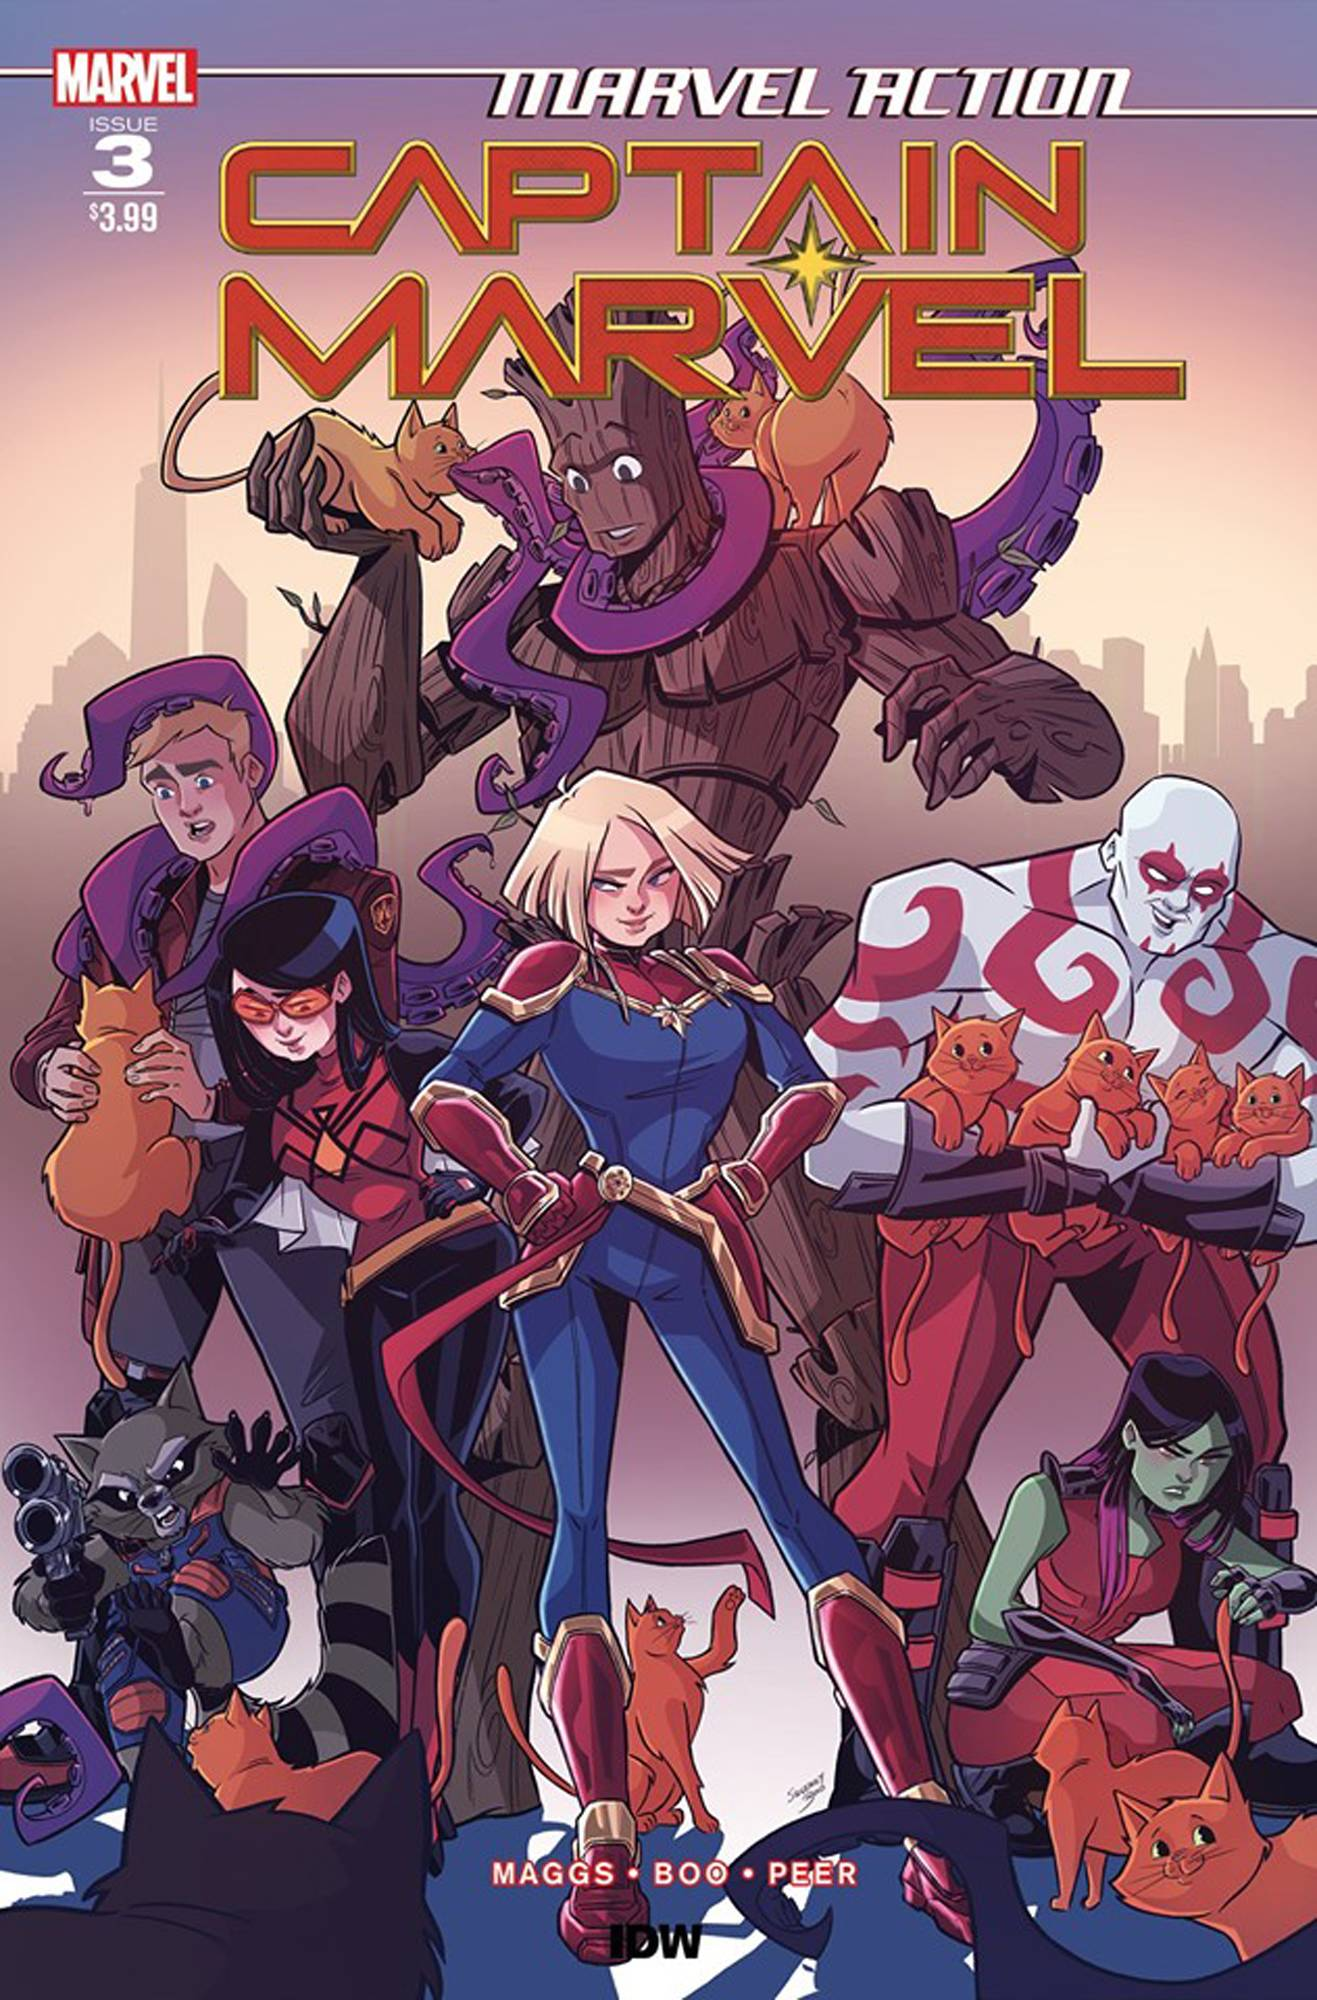 MARVEL ACTION CAPTAIN MARVEL #3 (OF 3) CVR A BOO